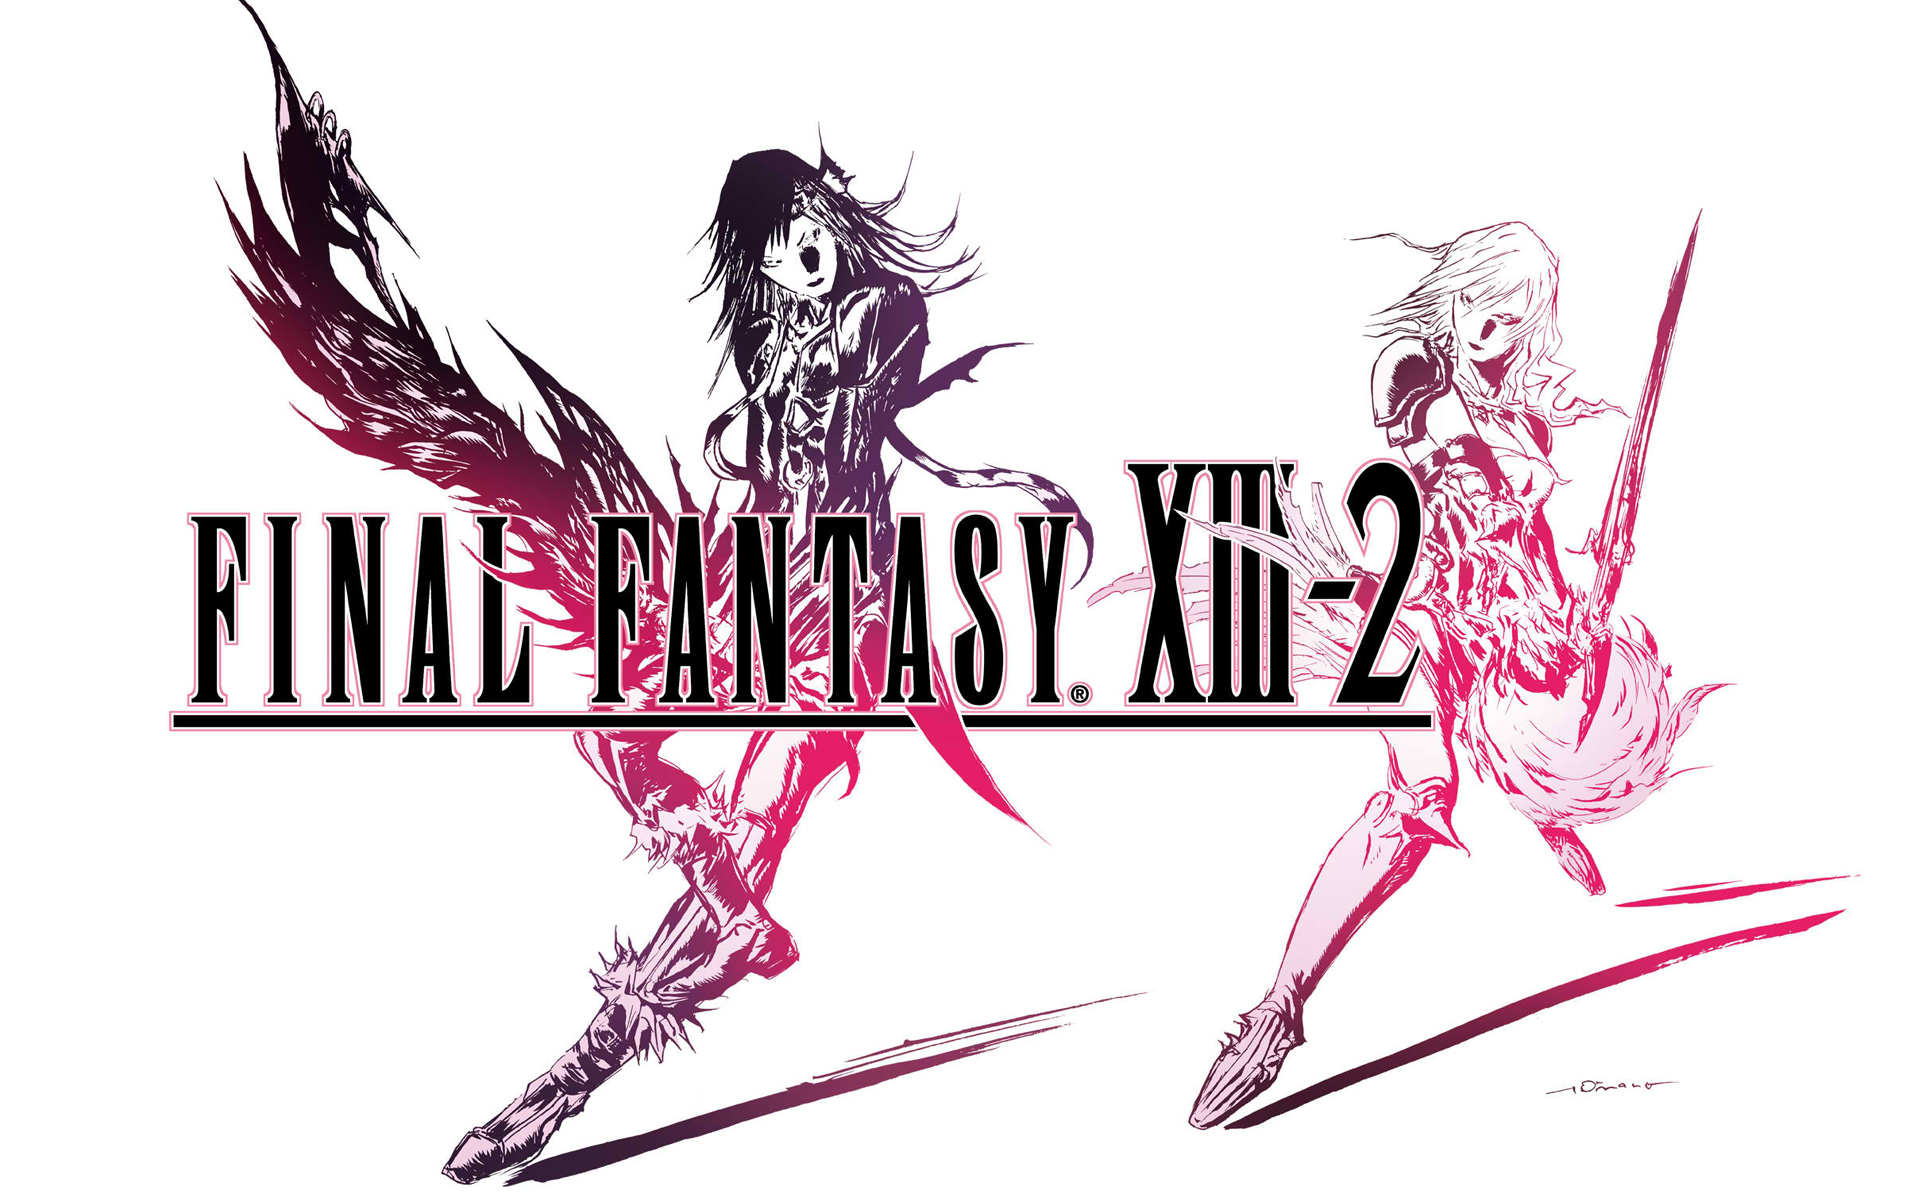 Final Fantasy XIII 2 24617 wallpaper